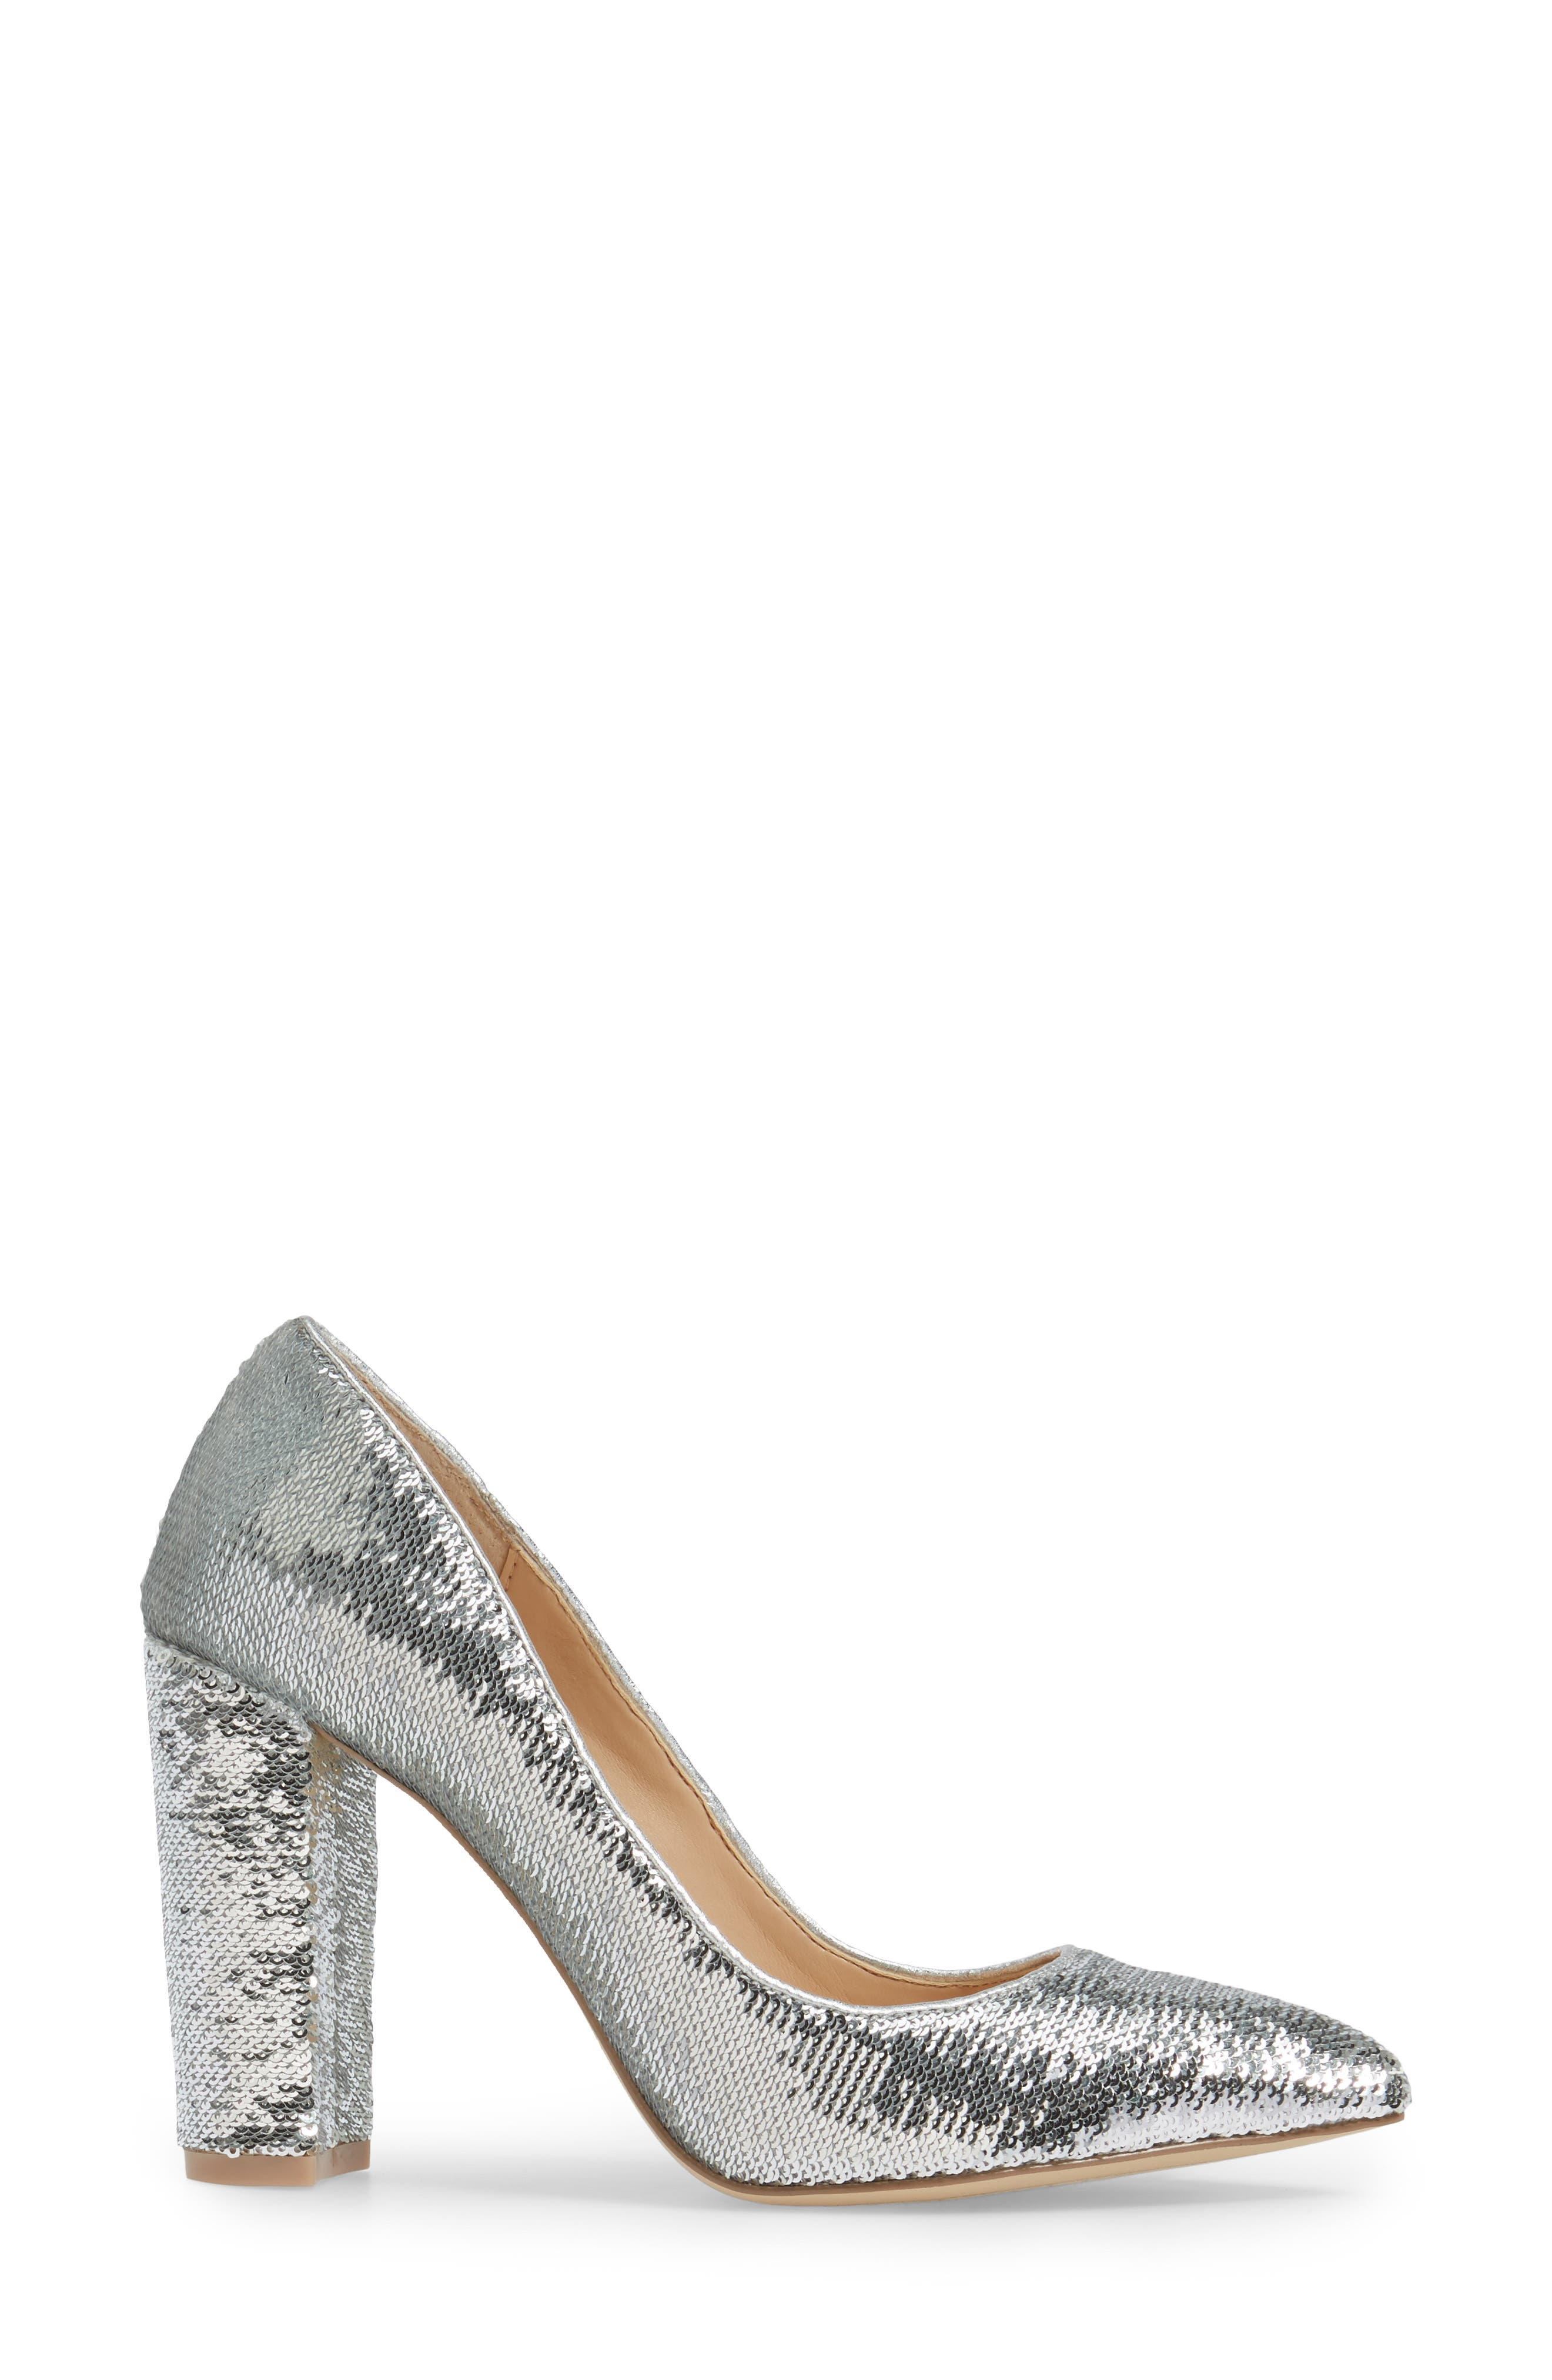 Luxury Pointy Toe Pump,                             Alternate thumbnail 3, color,                             Silver Leather